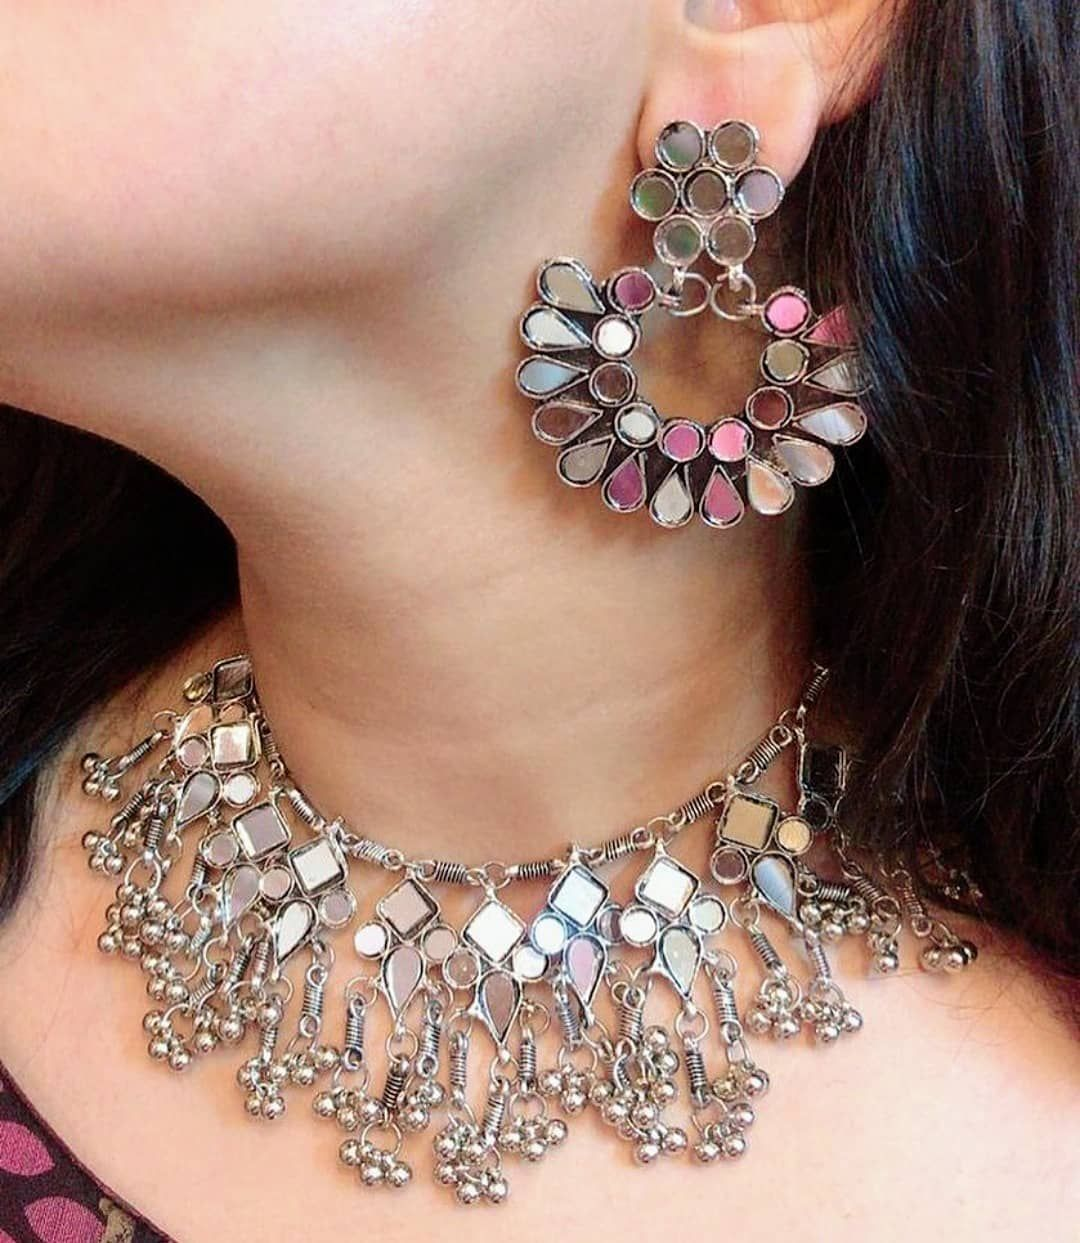 BEAUTIFUL GLASS NECKLACE in 550 EARRINGS in 420  FULL SET in 750 DIRECT MASSAGE TO PLACE ORDER  GOOD QUALITY  NO COD  DELIVERY TIME 78 DAYS  PAYMENT MODE PAYTM PHONE PAY...